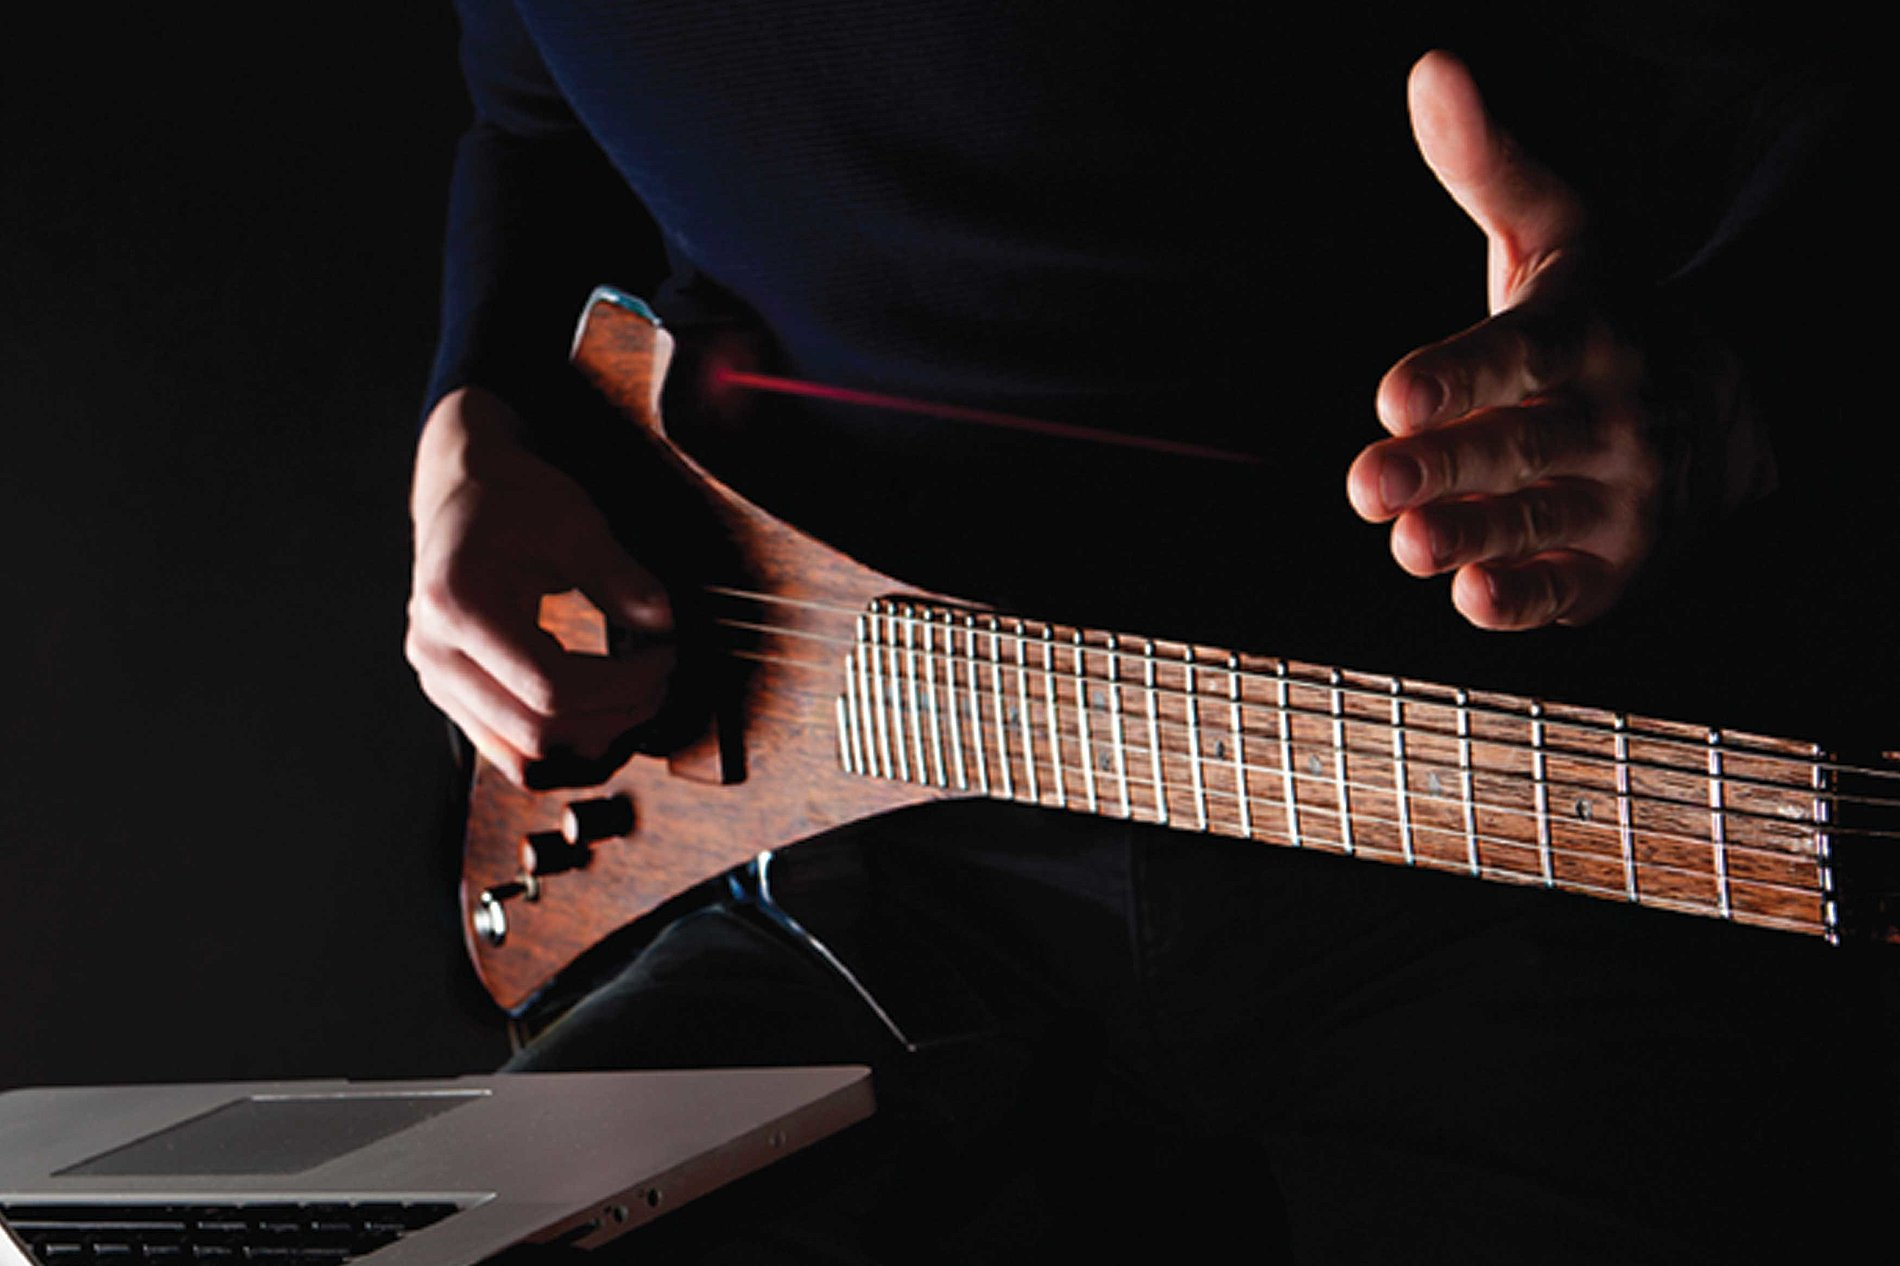 Drop X - Electric Guitar / MIDI Laser Controlled Instrument | Red Dot Design Award